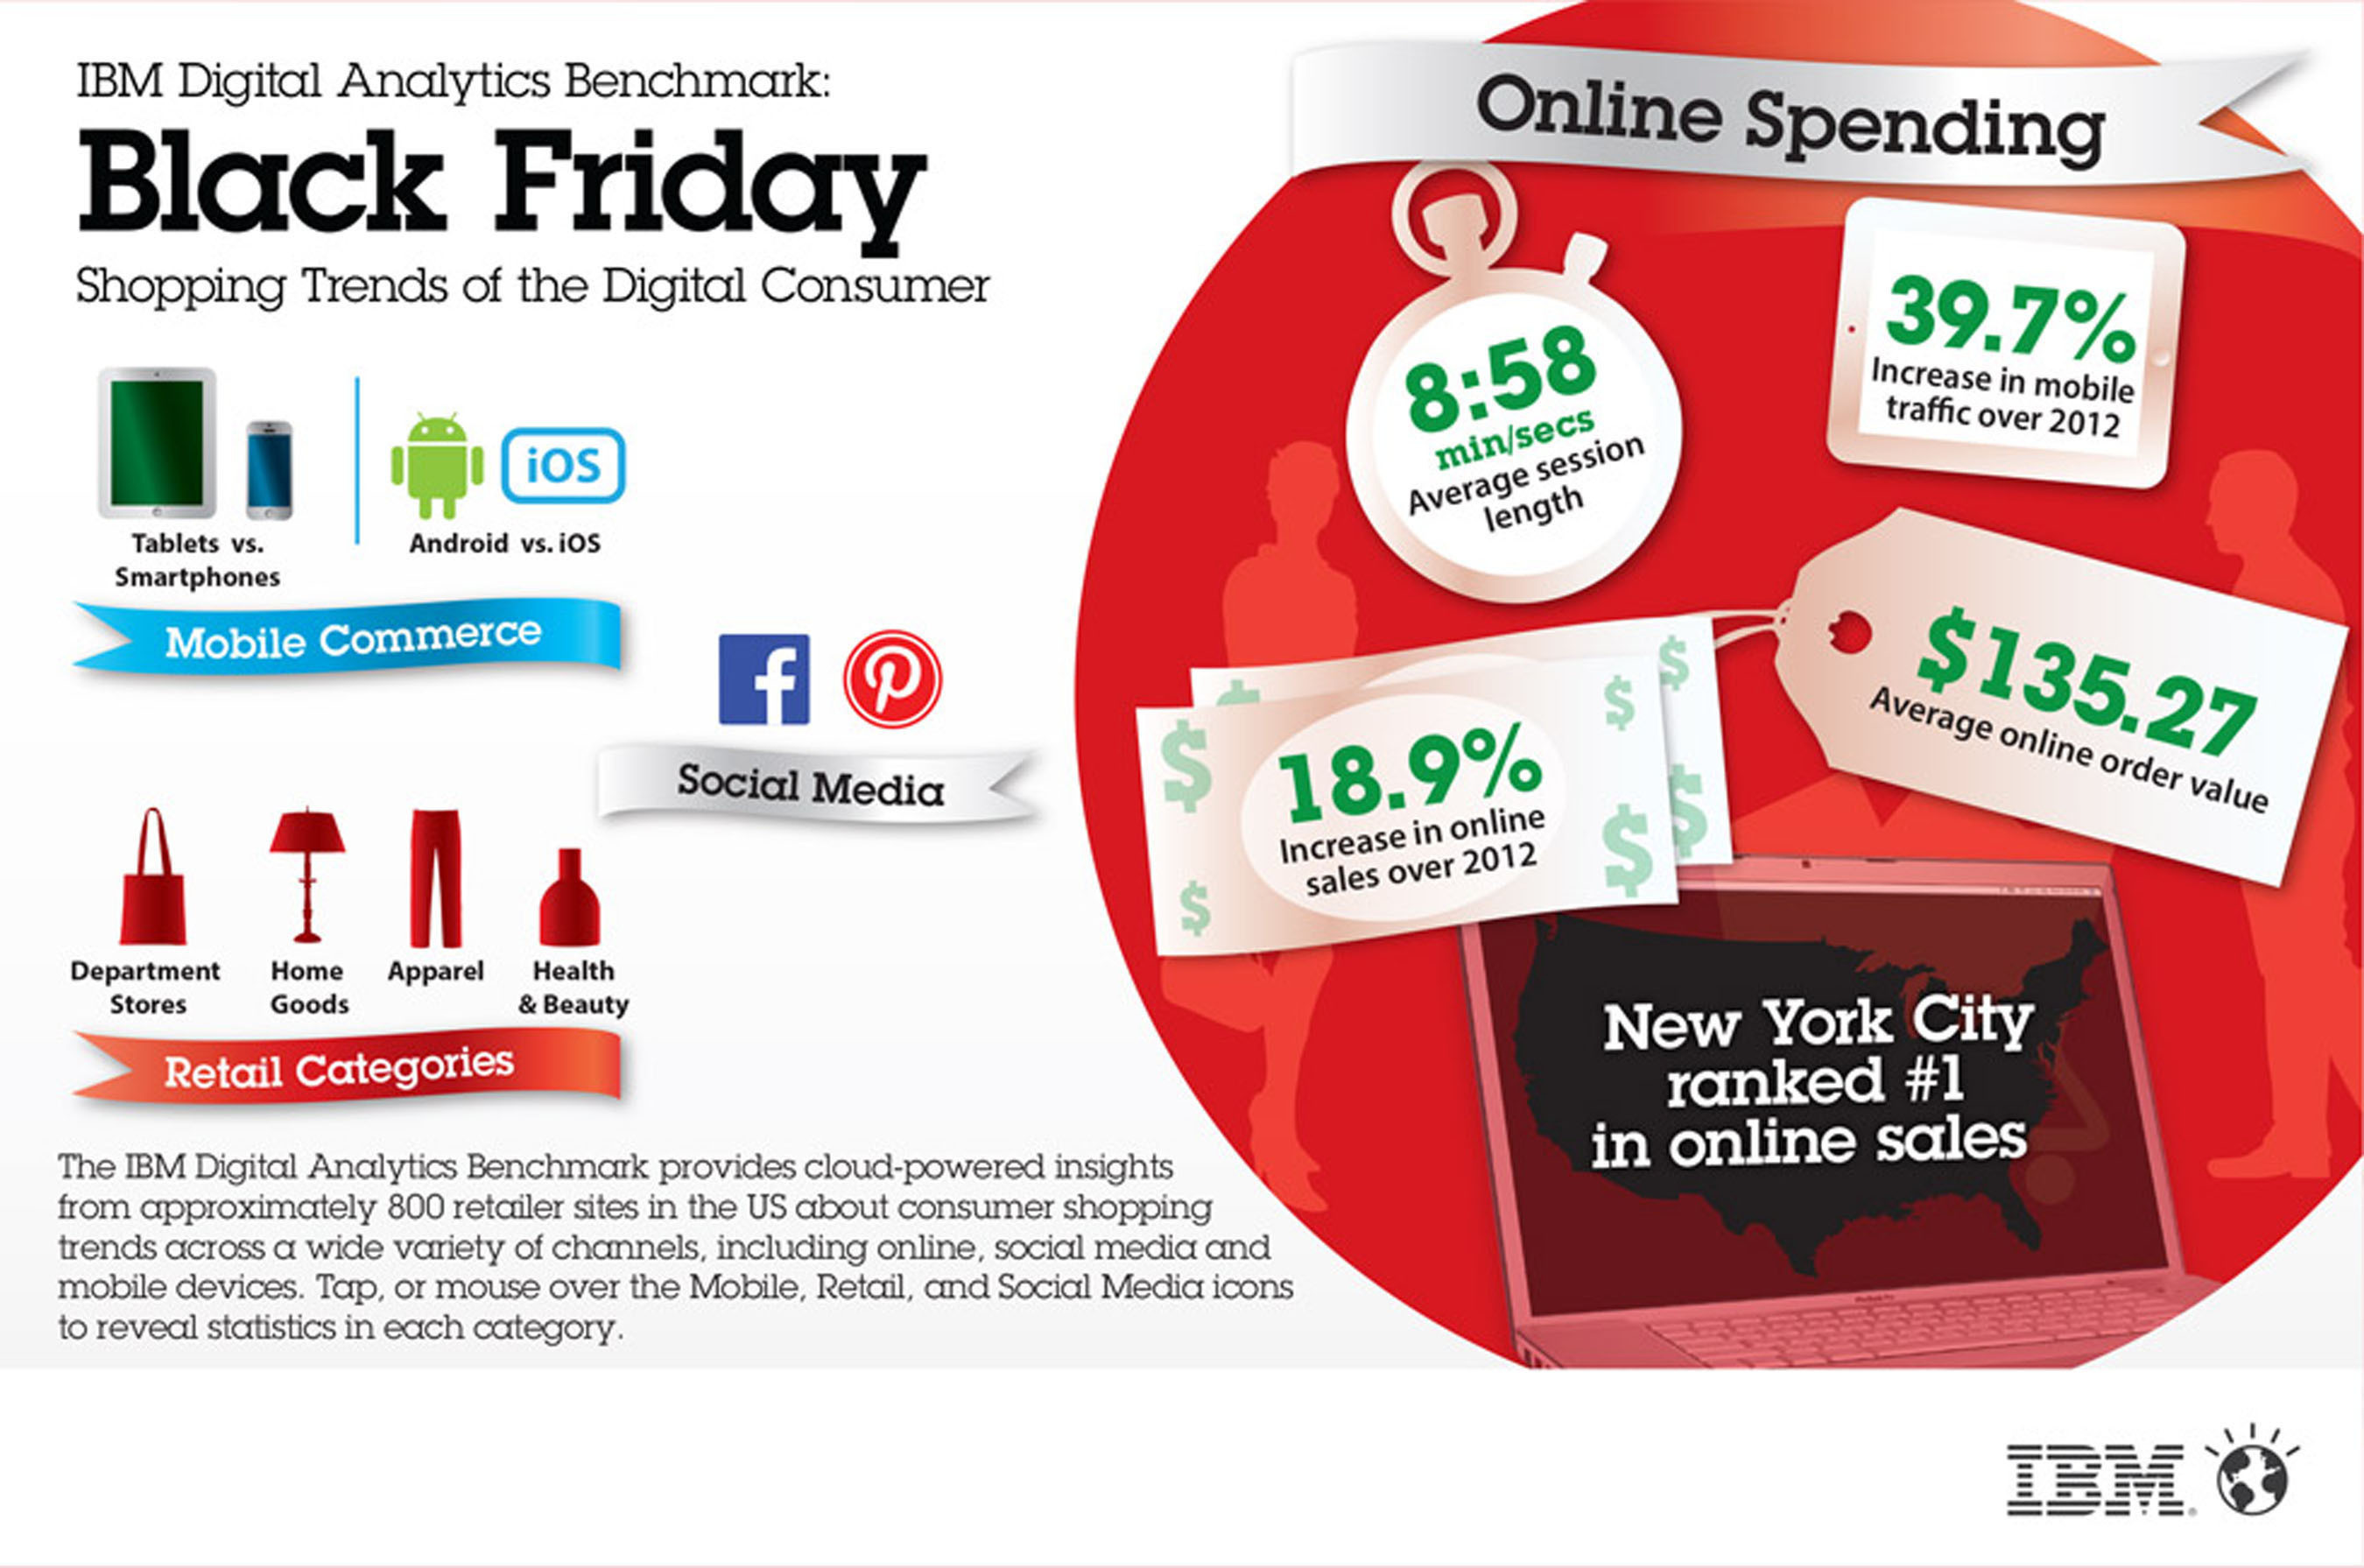 For full interactive Black Friday infographic, visit www.ibm.com/benchmark.  (PRNewsFoto/IBM)